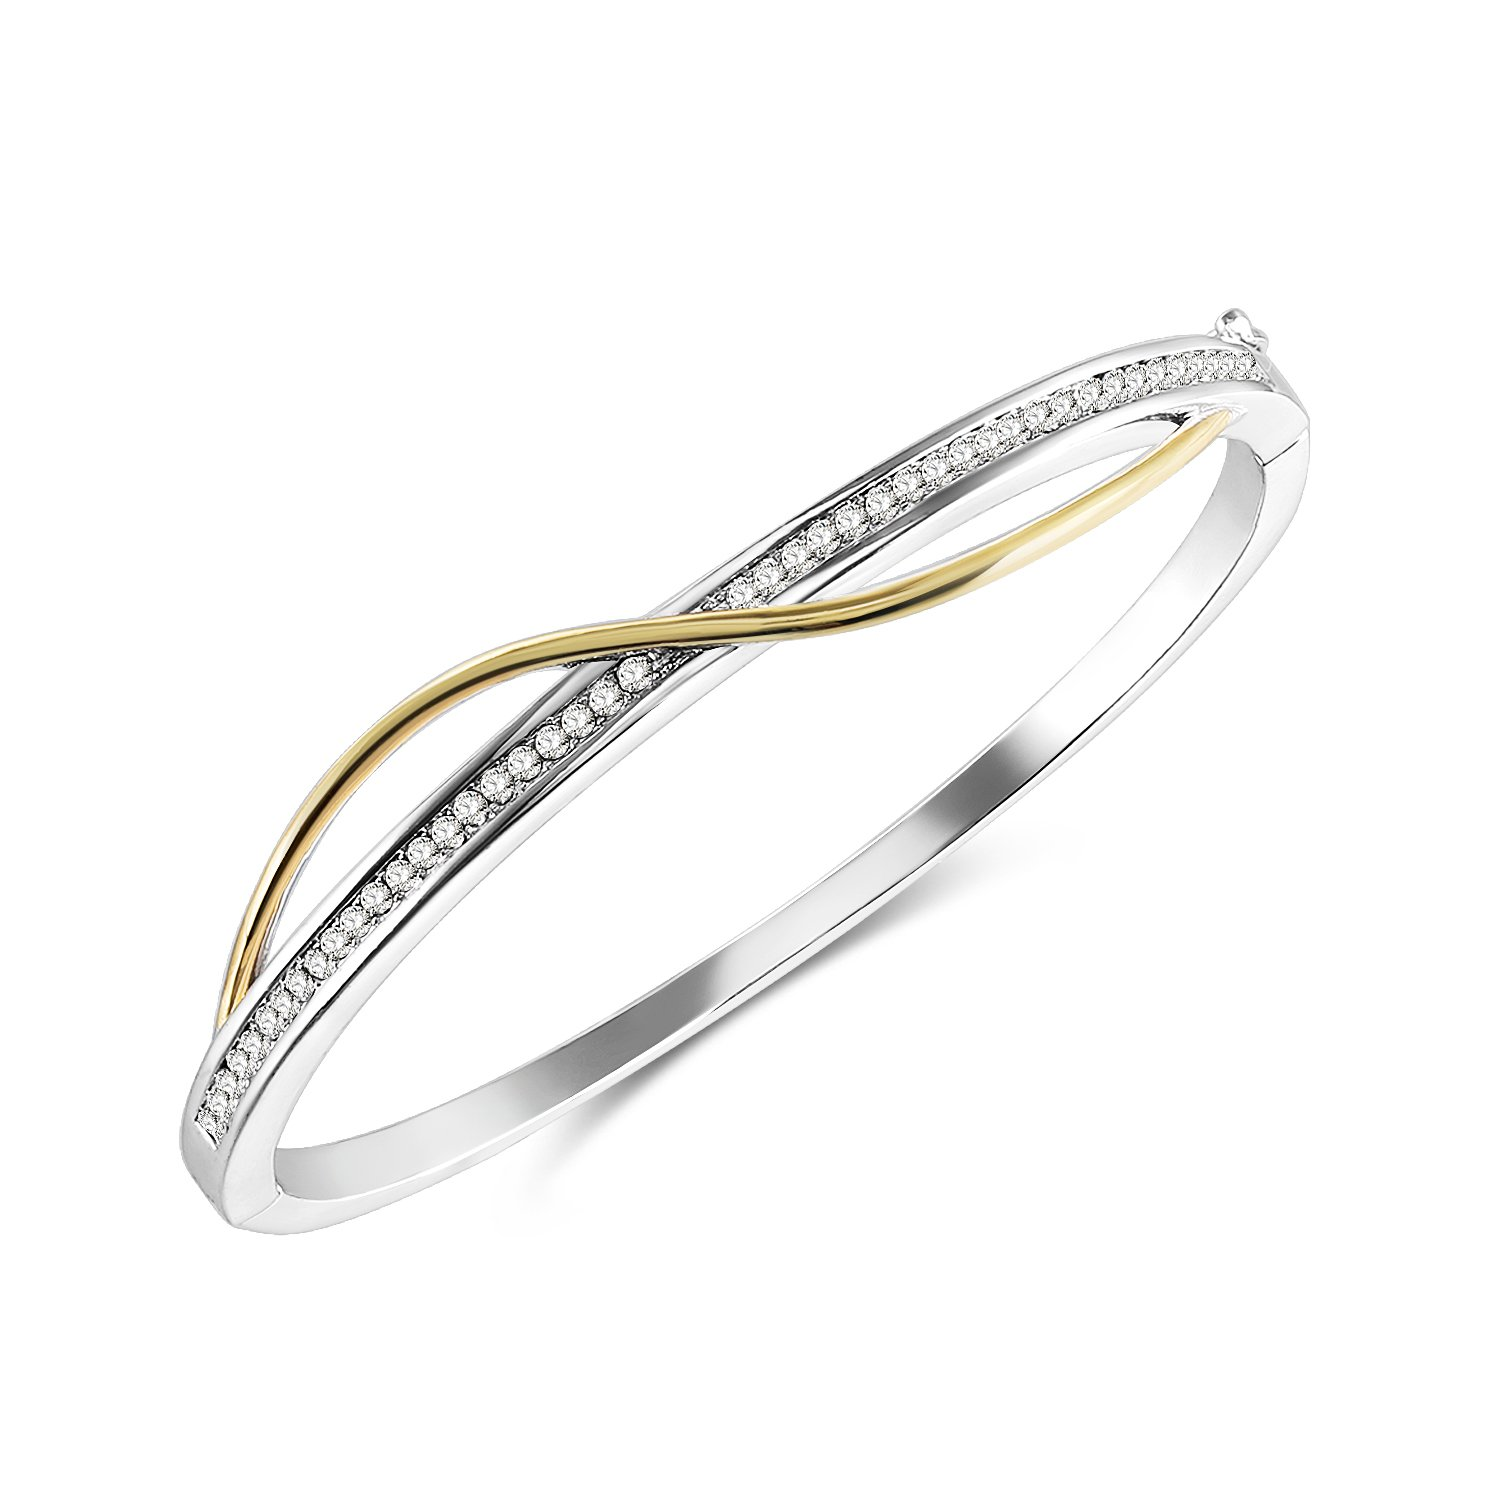 THEHORAE 'S-Curve' Entwined Bangle Bracelet 14K White Gold Plated Women Jewelry,Crystals from Swarovski, Luxury Gift Box Packaged